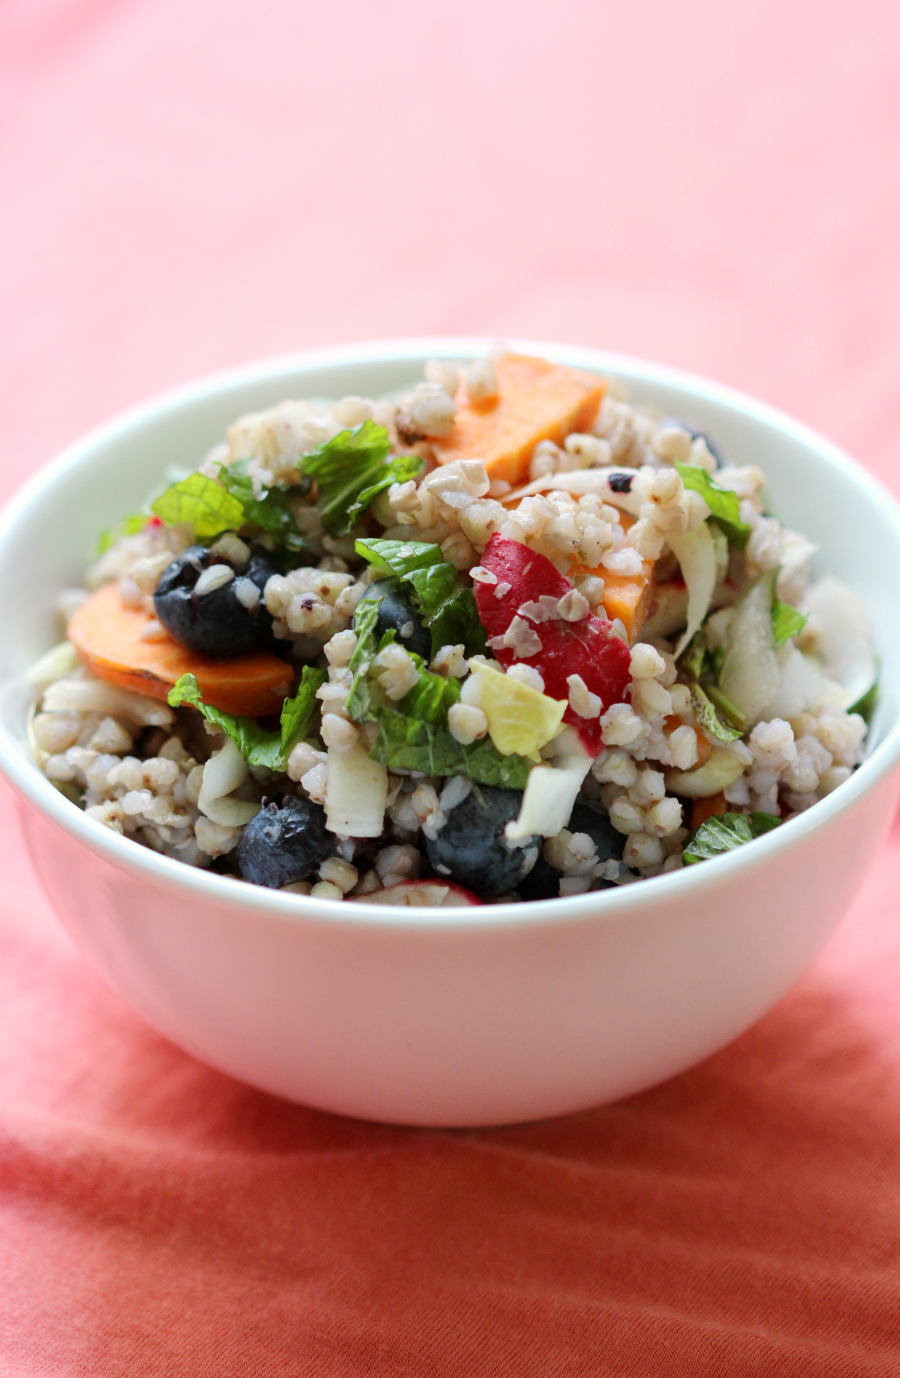 Rainbow Buckwheat Salad | Strength and Sunshine @RebeccaGF666 All the colors and lush flavors of summer in a delightful, gluten-free, & vegan Rainbow Buckwheat Salad. Crisp veggies, sweet blueberries, and fragrant spices like cardamom pull this cold side dish recipe together.